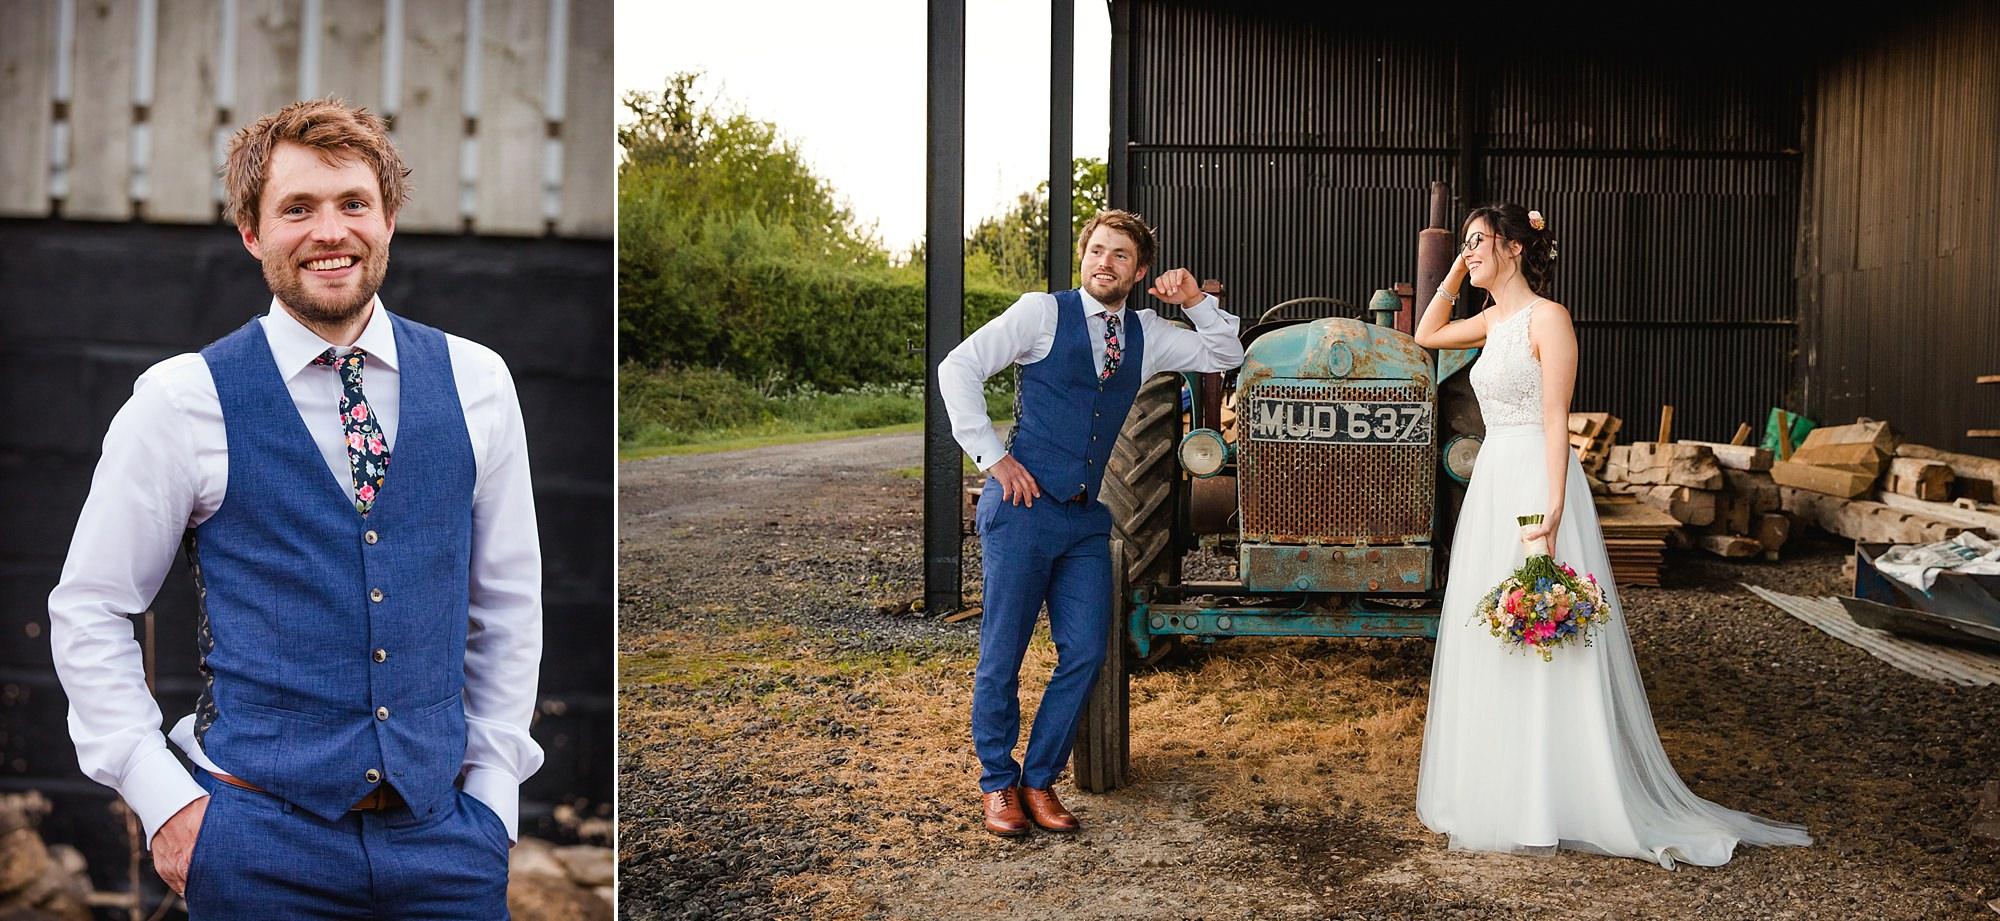 Caswell House Wedding portrait of groom with vintage tractor